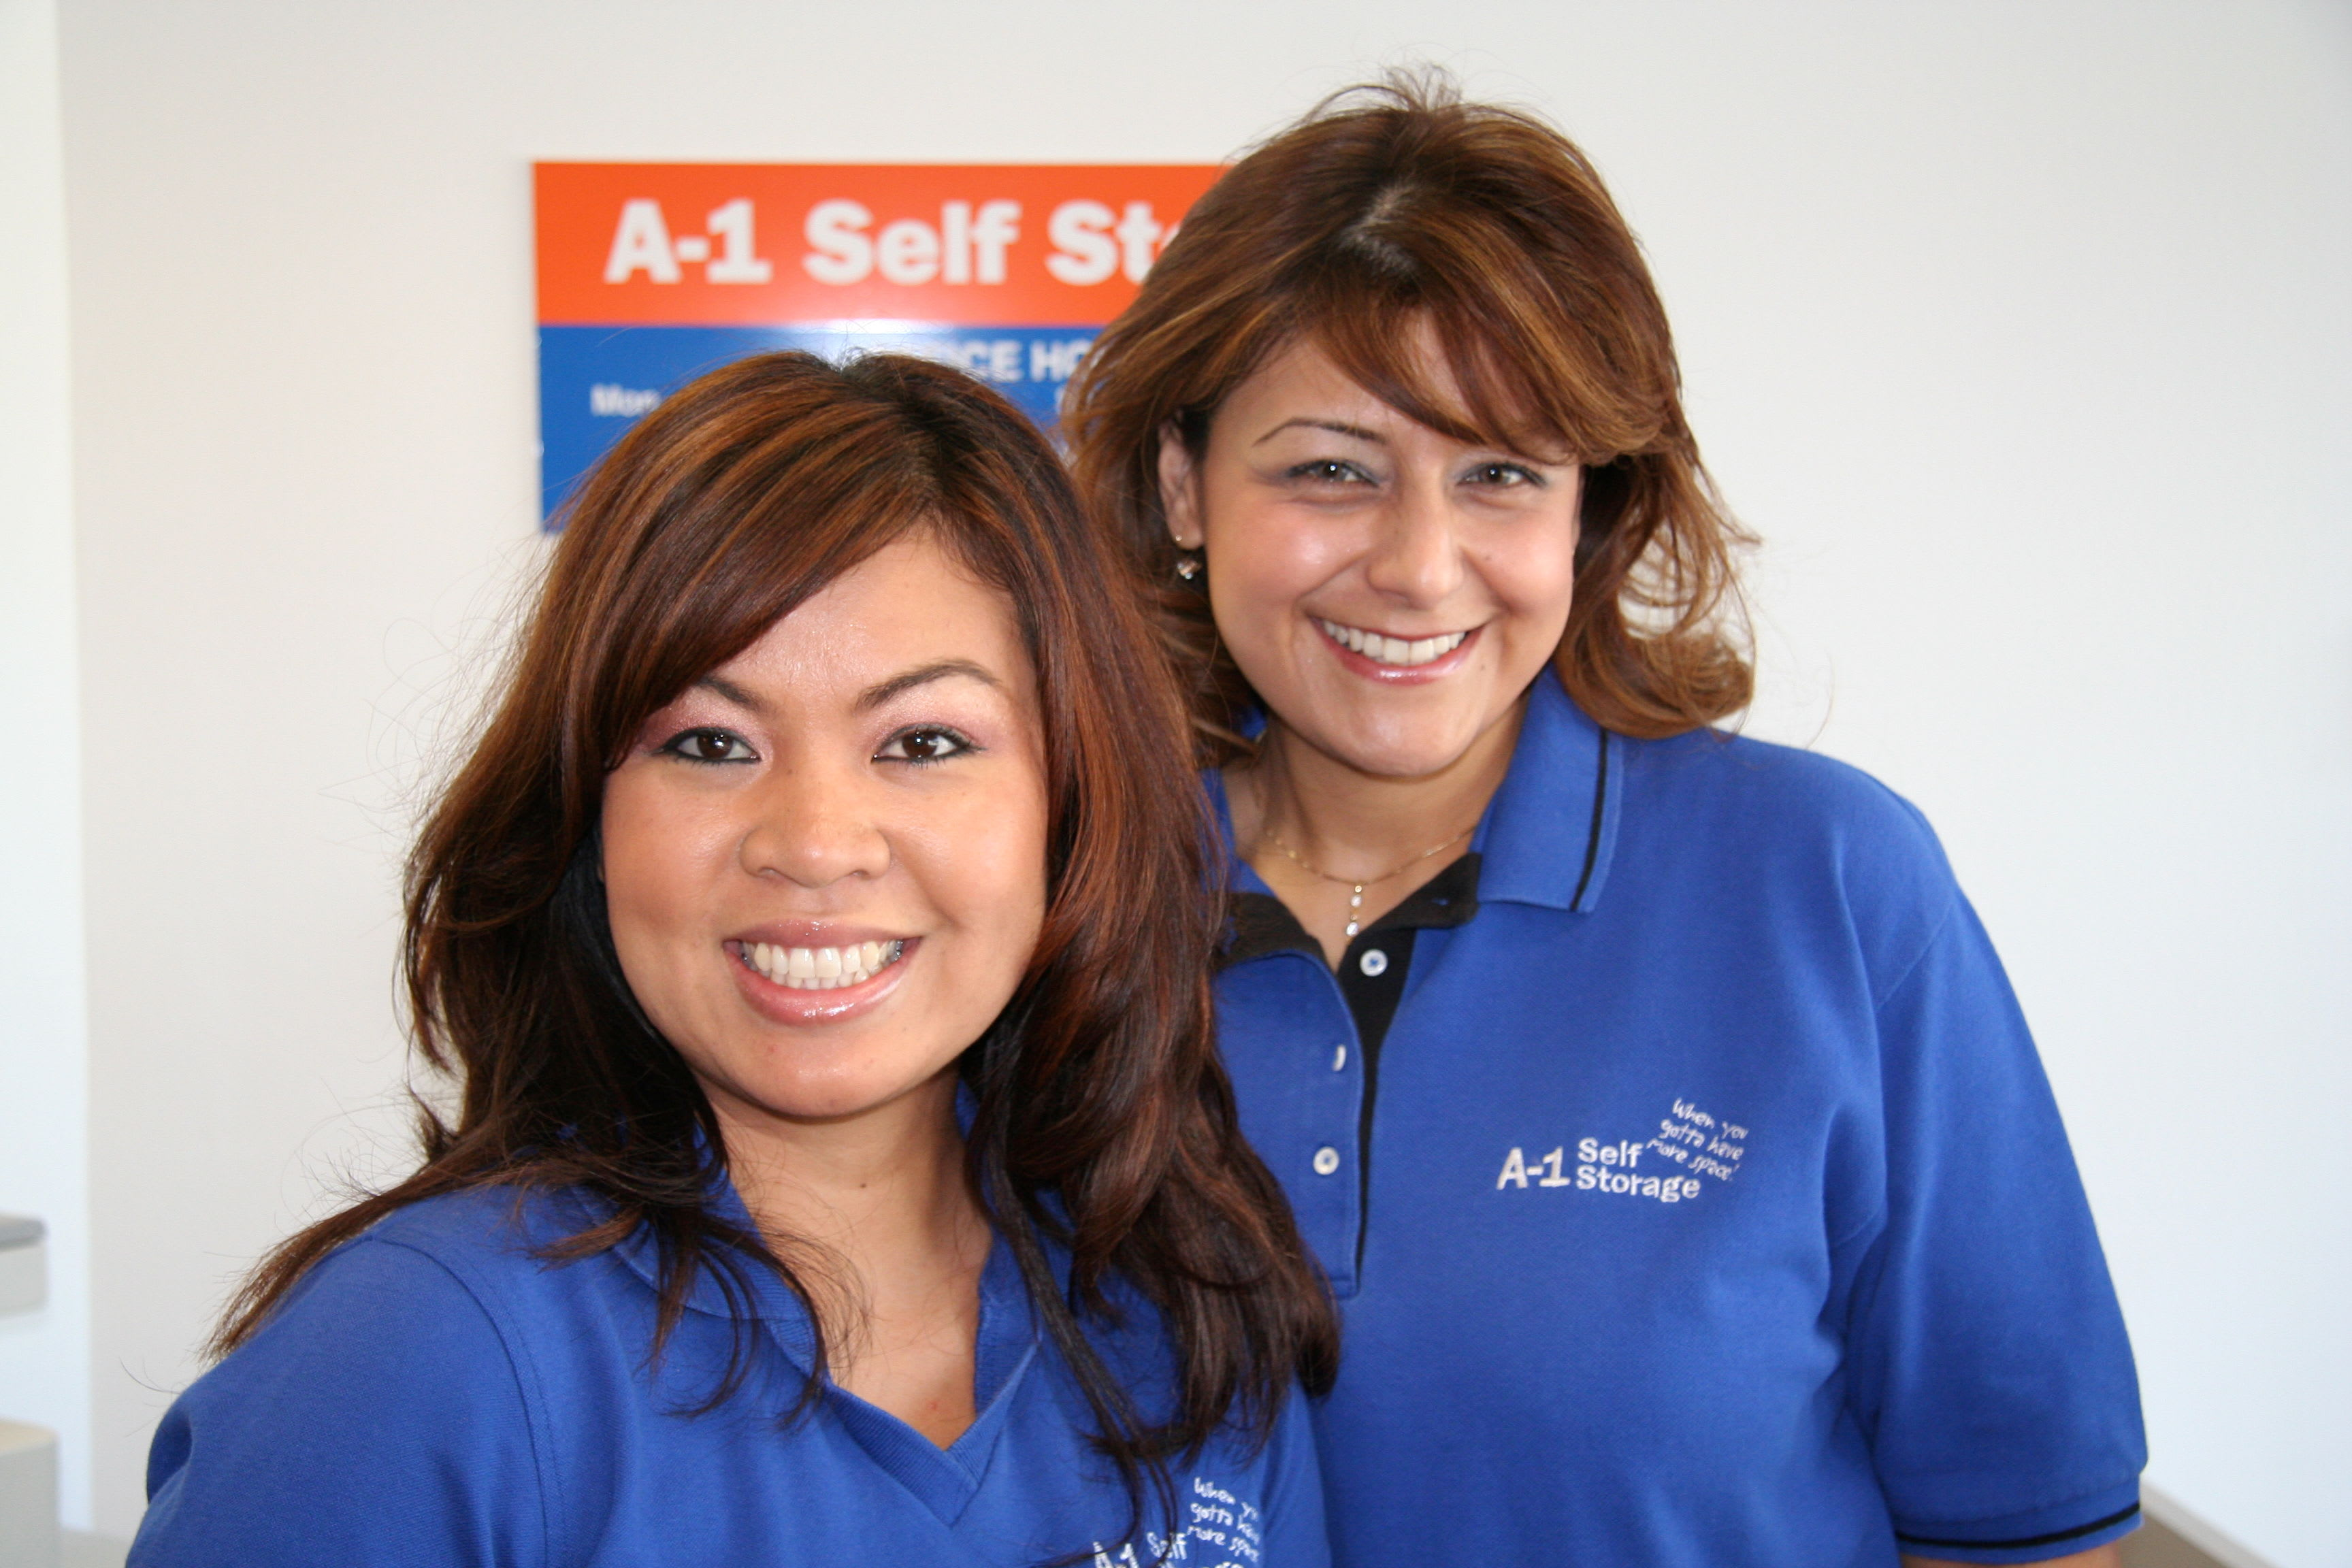 Our team at A-1 Self Storage in National City, California